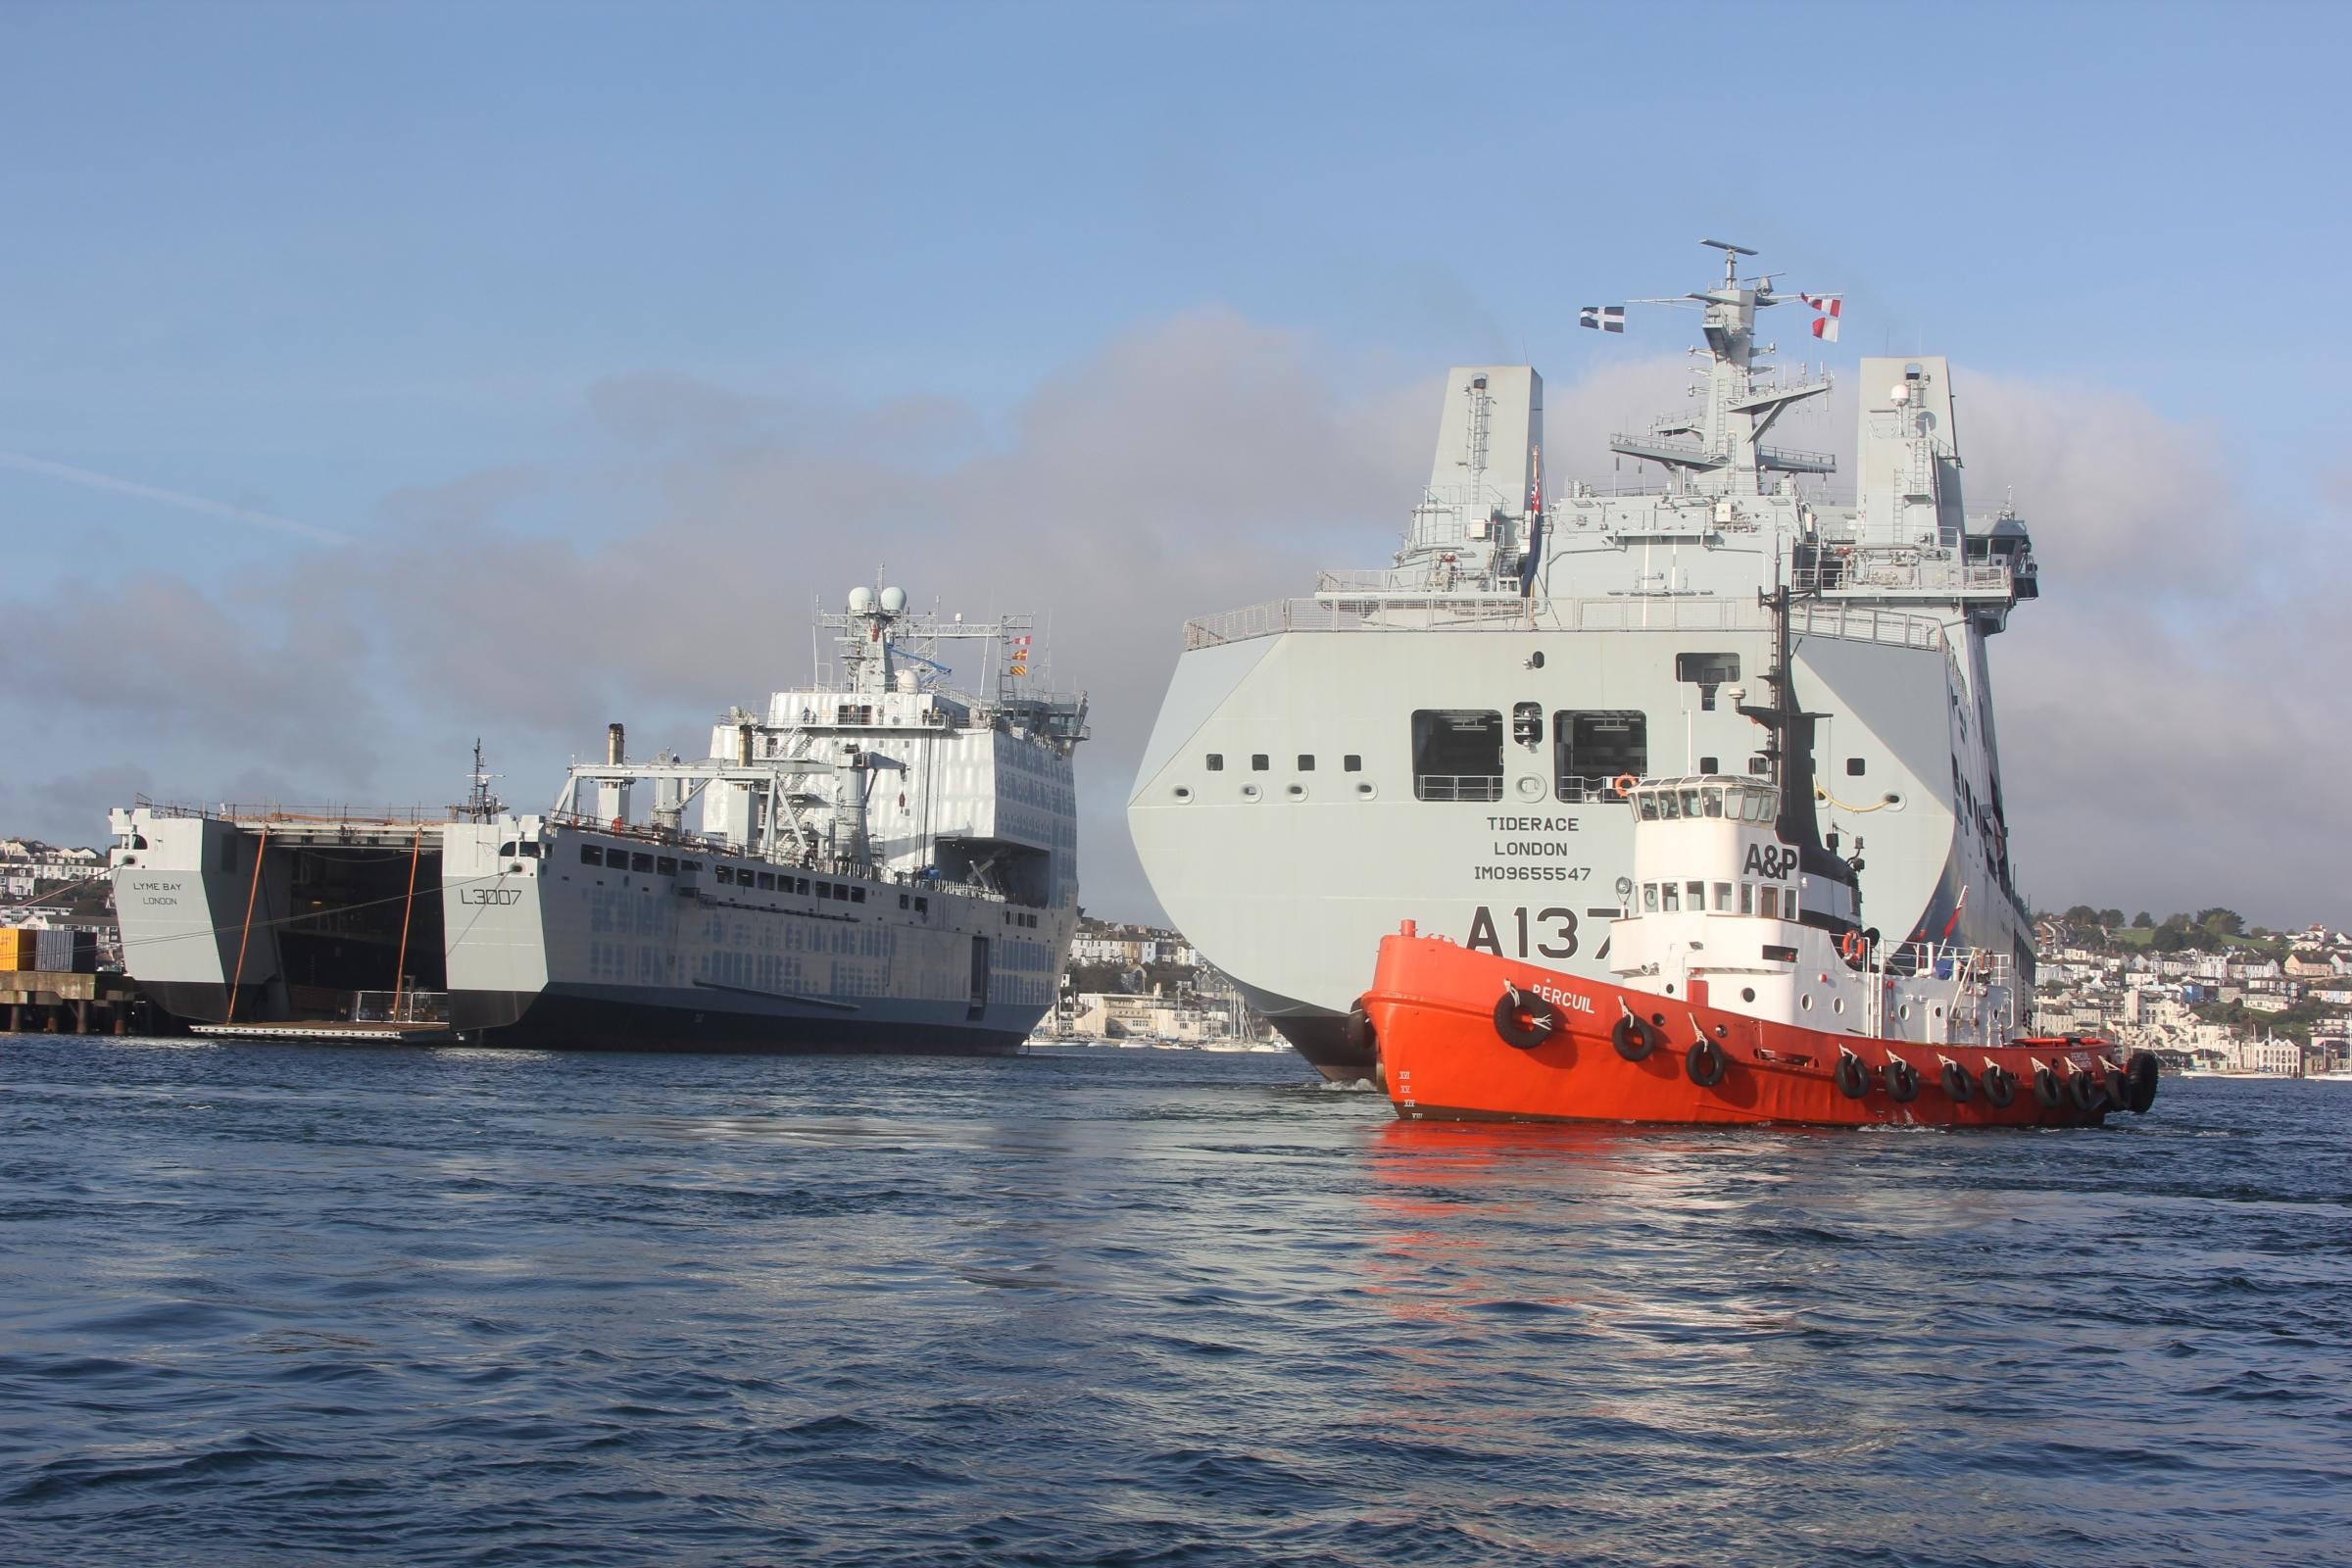 Aided by three tugs RFA Tiderace enters the inner harbour as she passes RFA Lyme Bay.  Photo: David Barnicoat